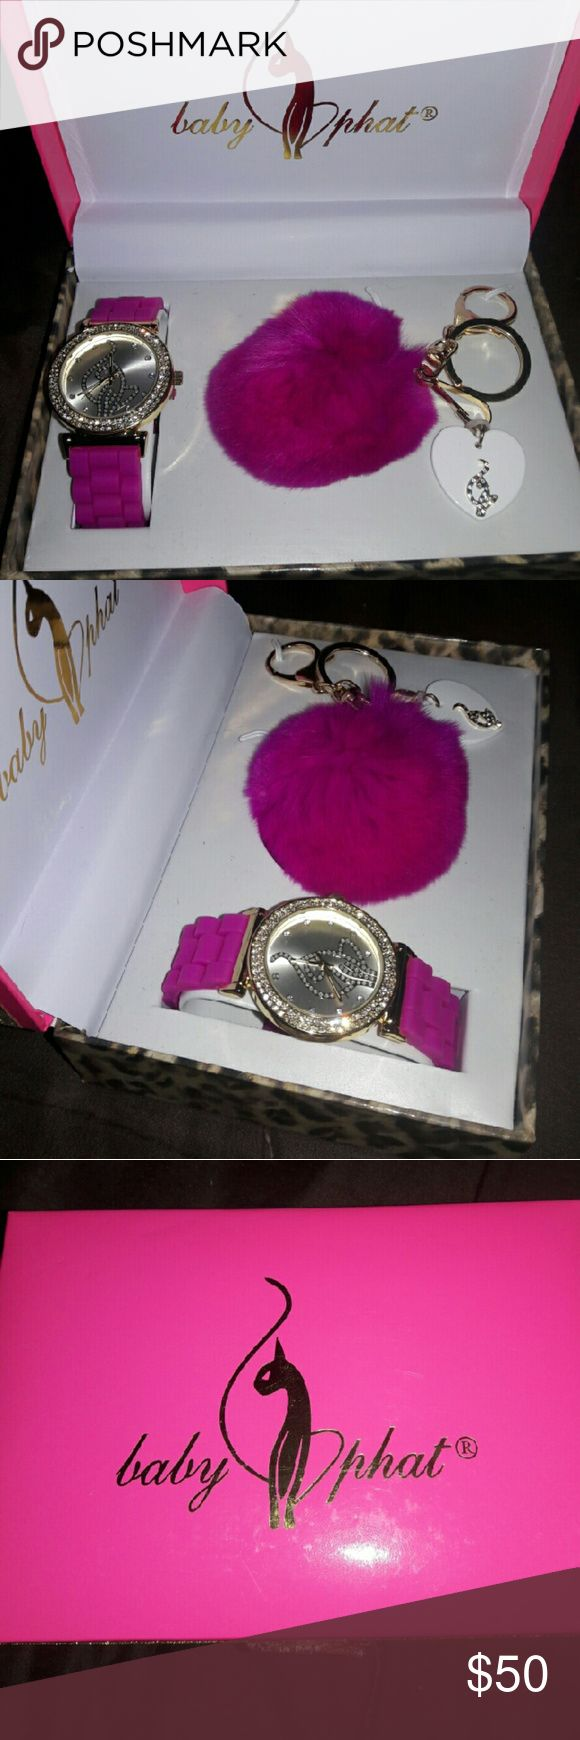 Baby phat women's watch and key chain set Very pretty baby phat women's watch and key chain set brand new still in original box! Baby Phat Accessories Watches